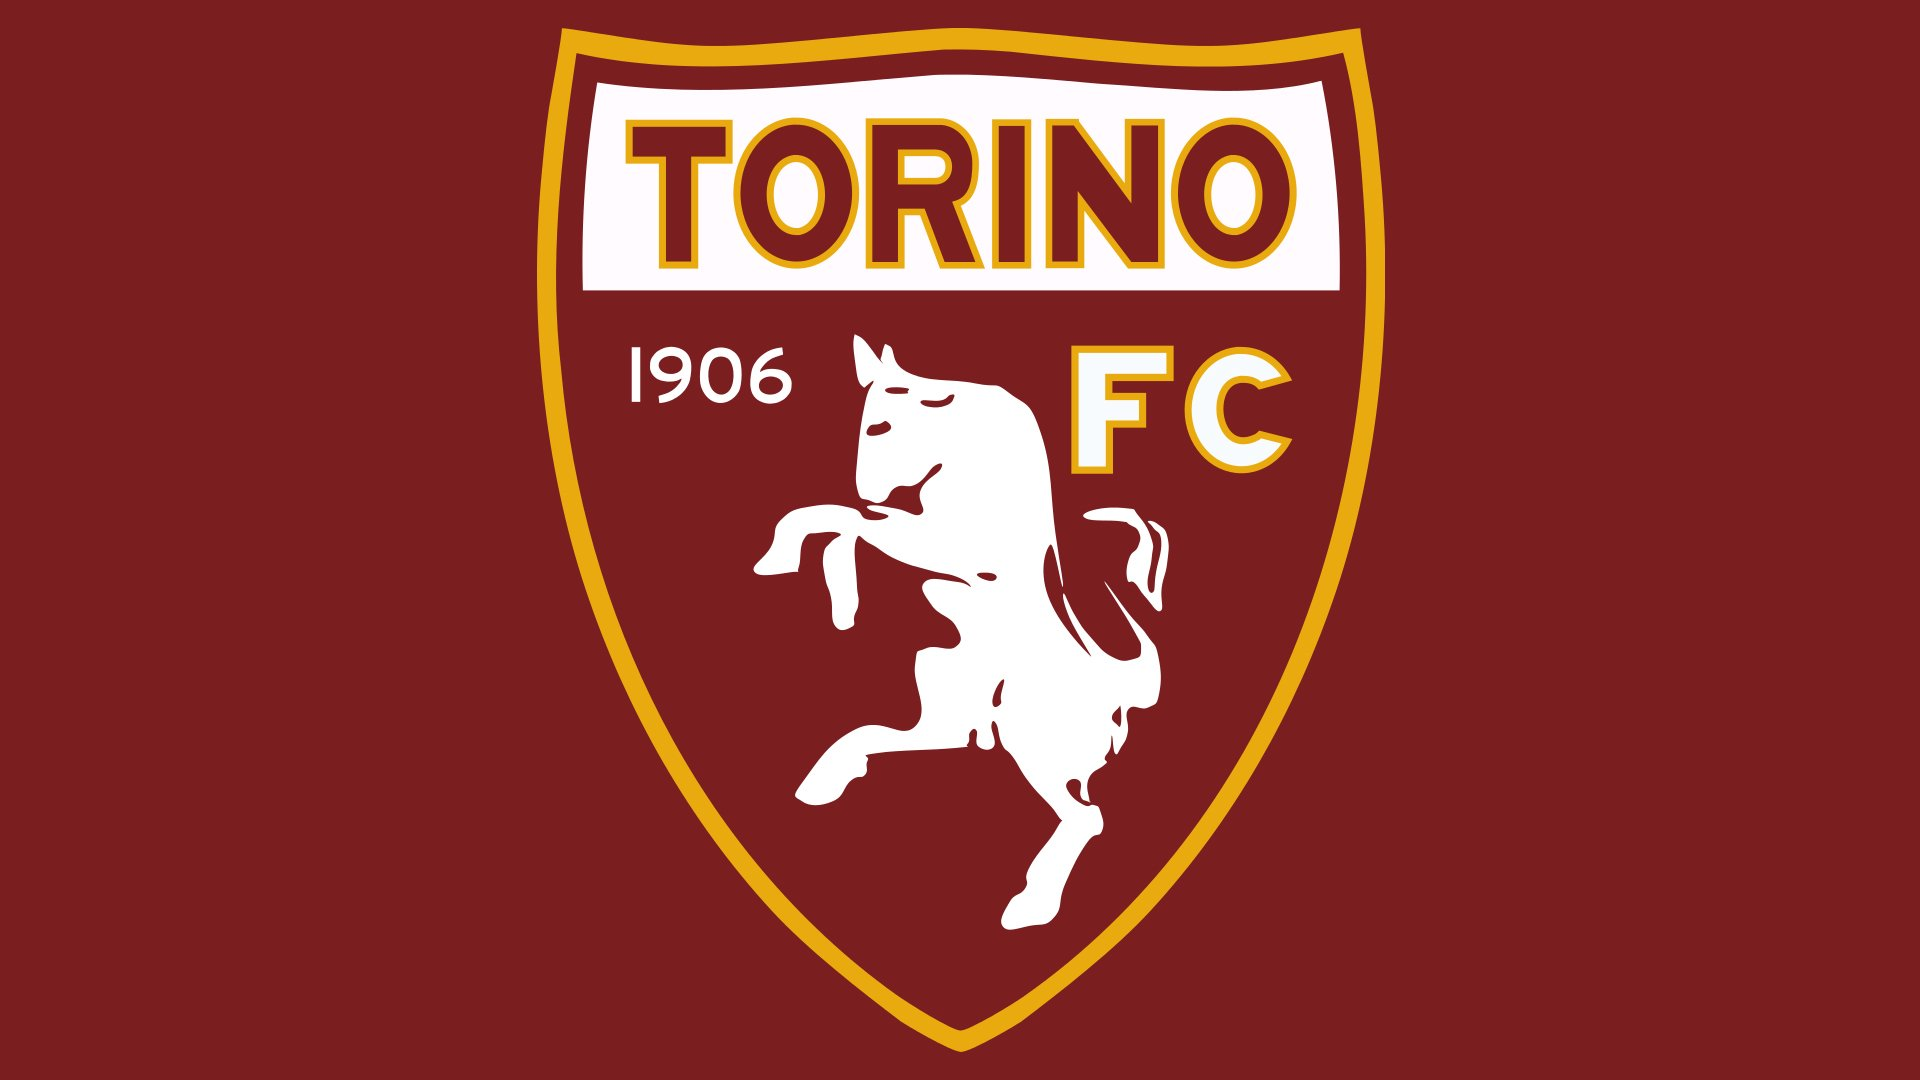 Meaning torino logo and symbol history and evolution for Logos space torino